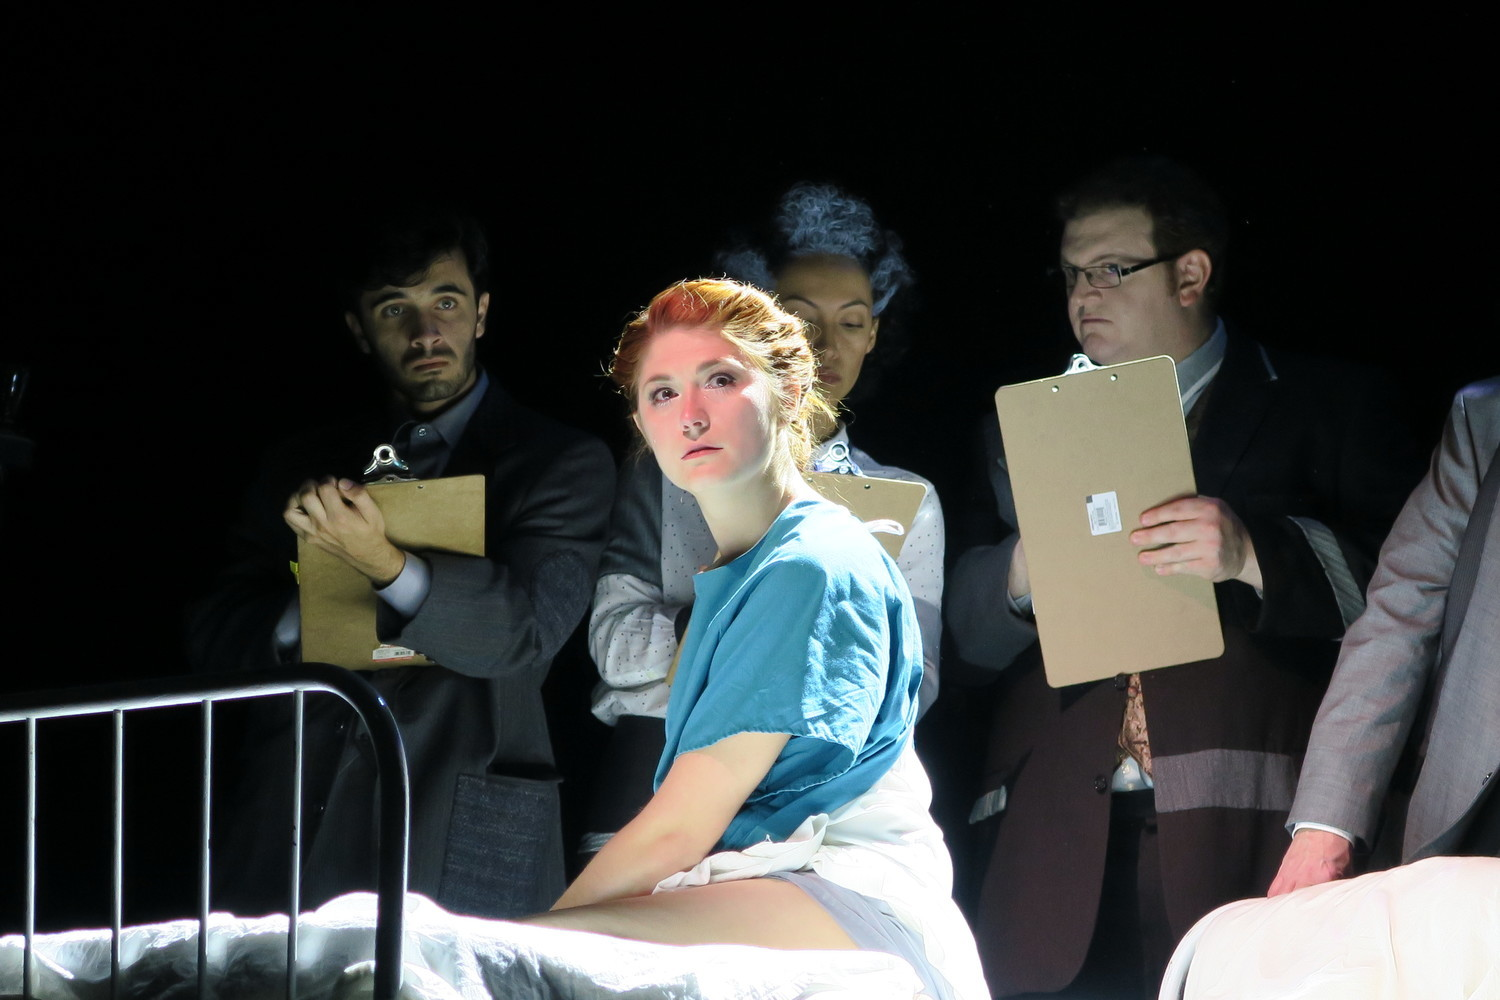 BWW Review: CalRep Shines Light on a Woman's Struggle For Freedom in Powerful Production of MACHINAL at CSULB